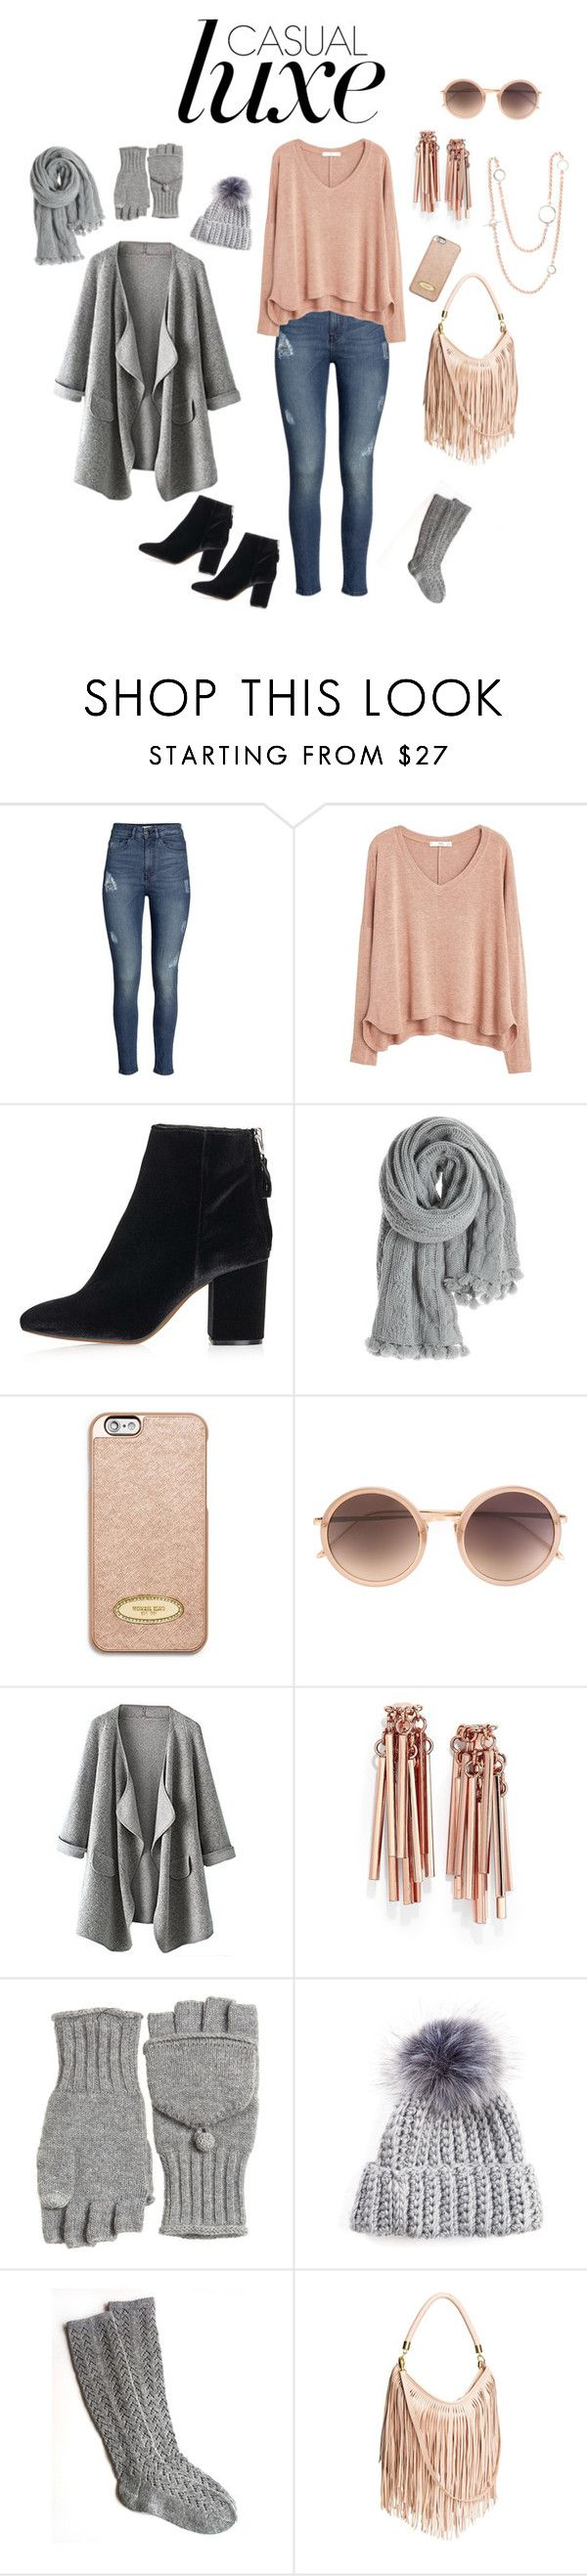 """""""Pink & Gray Casual Luxe for Winter"""" by irenehelms on Polyvore featuring H&M, MANGO, Topshop, Calypso St. Barth, MICHAEL Michael Kors, Linda Farrow, Eddie Borgo and Erin Cox Jewellery"""